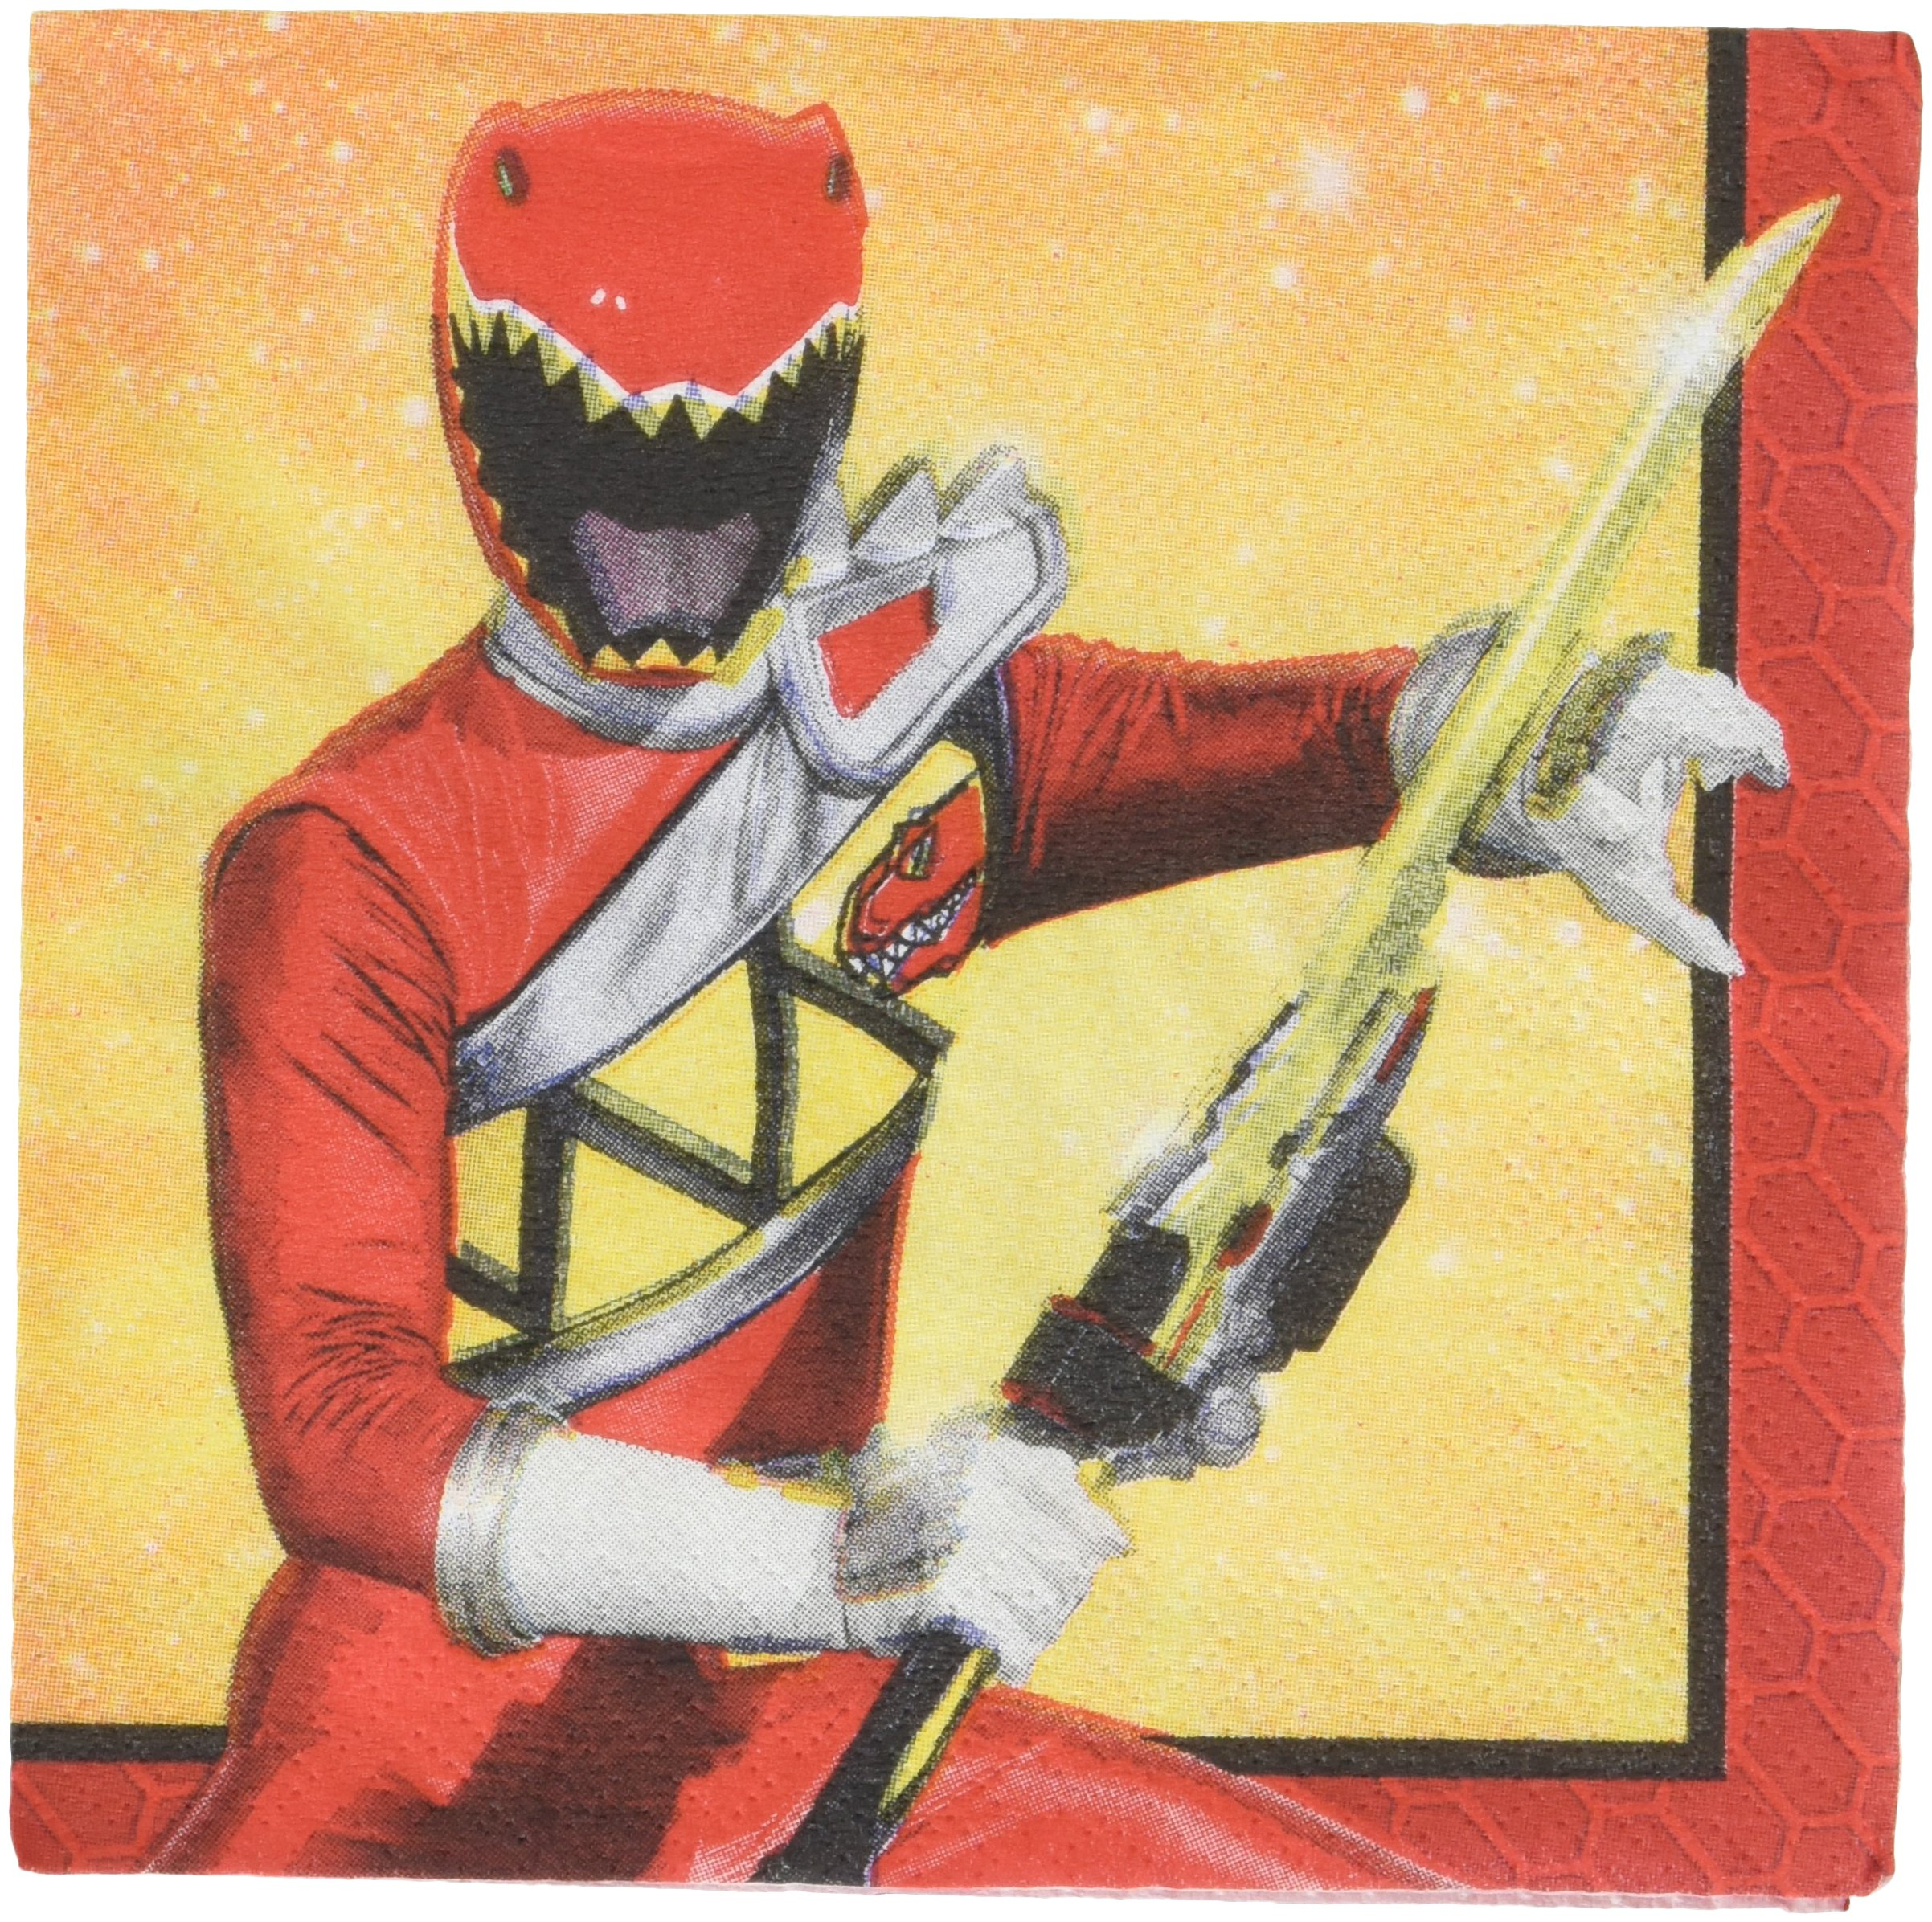 amscan Power Rangers Dino Charge Beverage Napkins, Party Favor, 96 Ct. by amscan